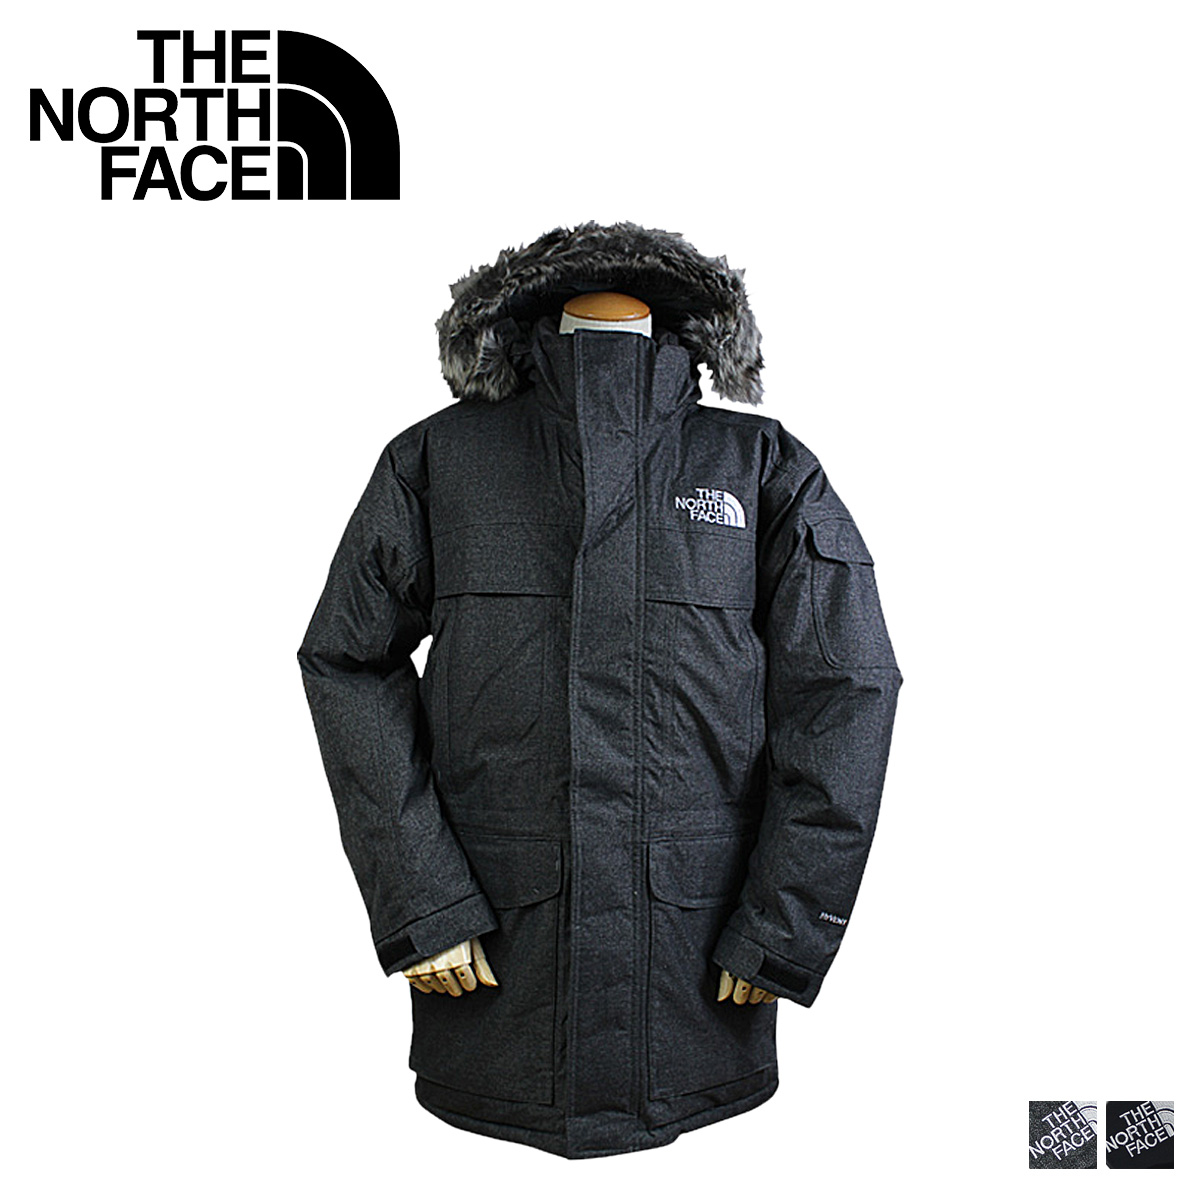 724925959 [SOLD OUT] the MCMURDO PARKA mens, North face THE NORTH FACE mountain parka  in black gray A8XZ [regular]